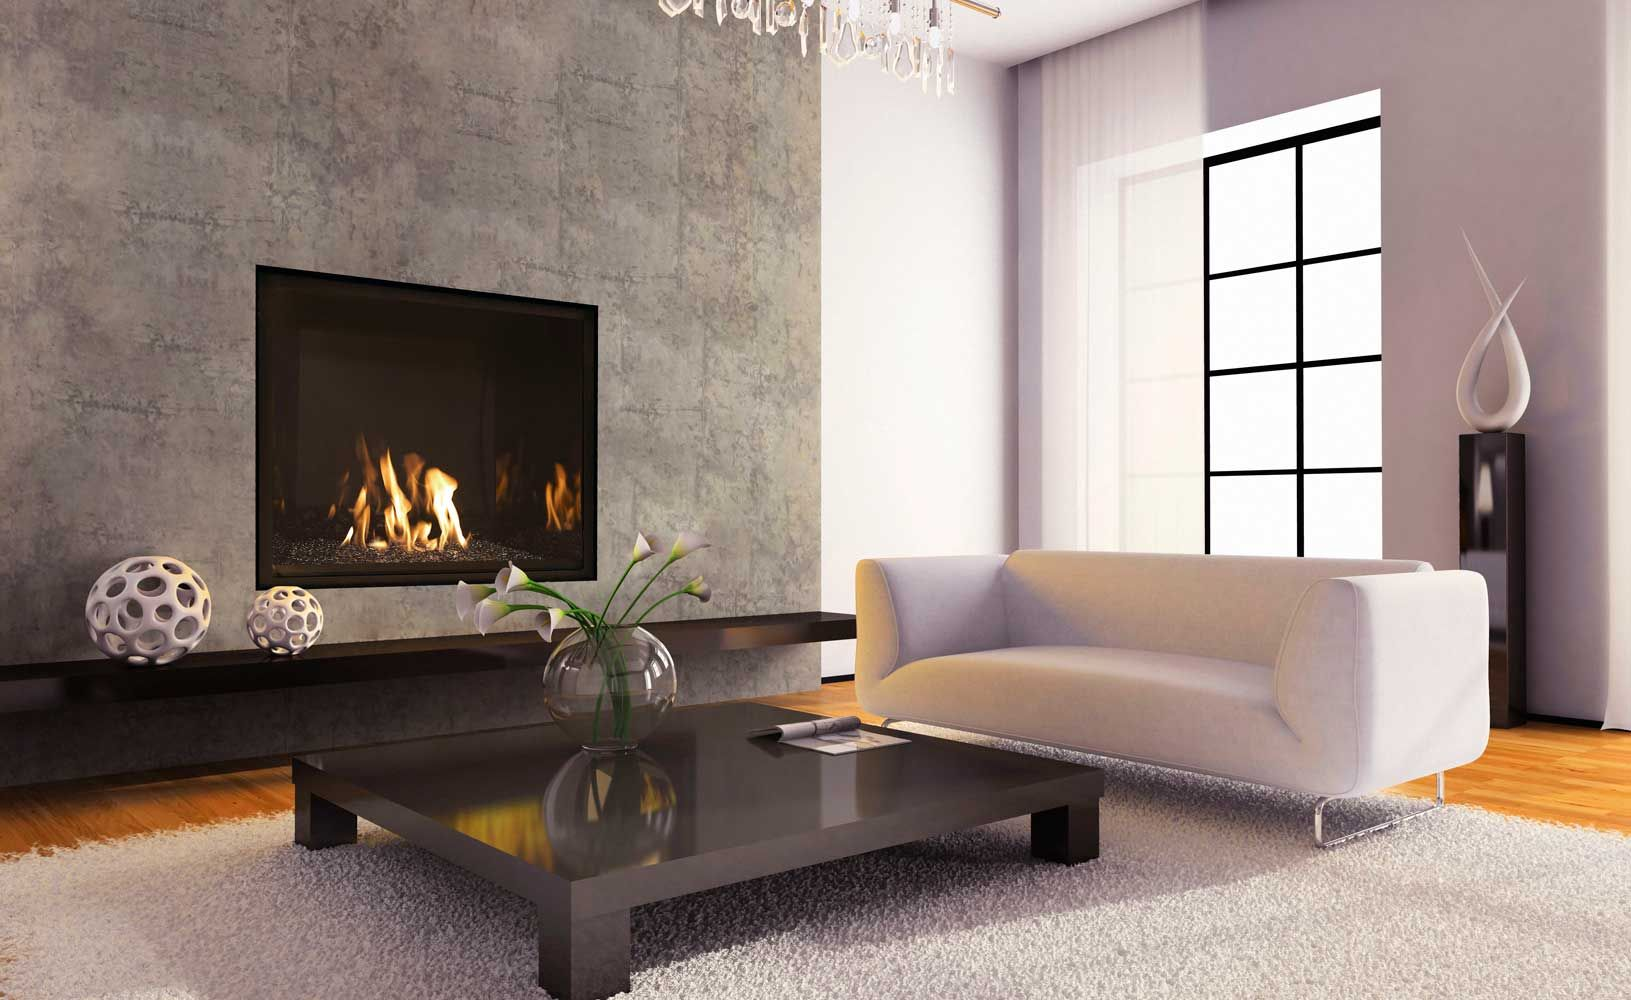 Contemporary Stone Fireplace Designs | ... Modern fireplace becomes living,  moving art in